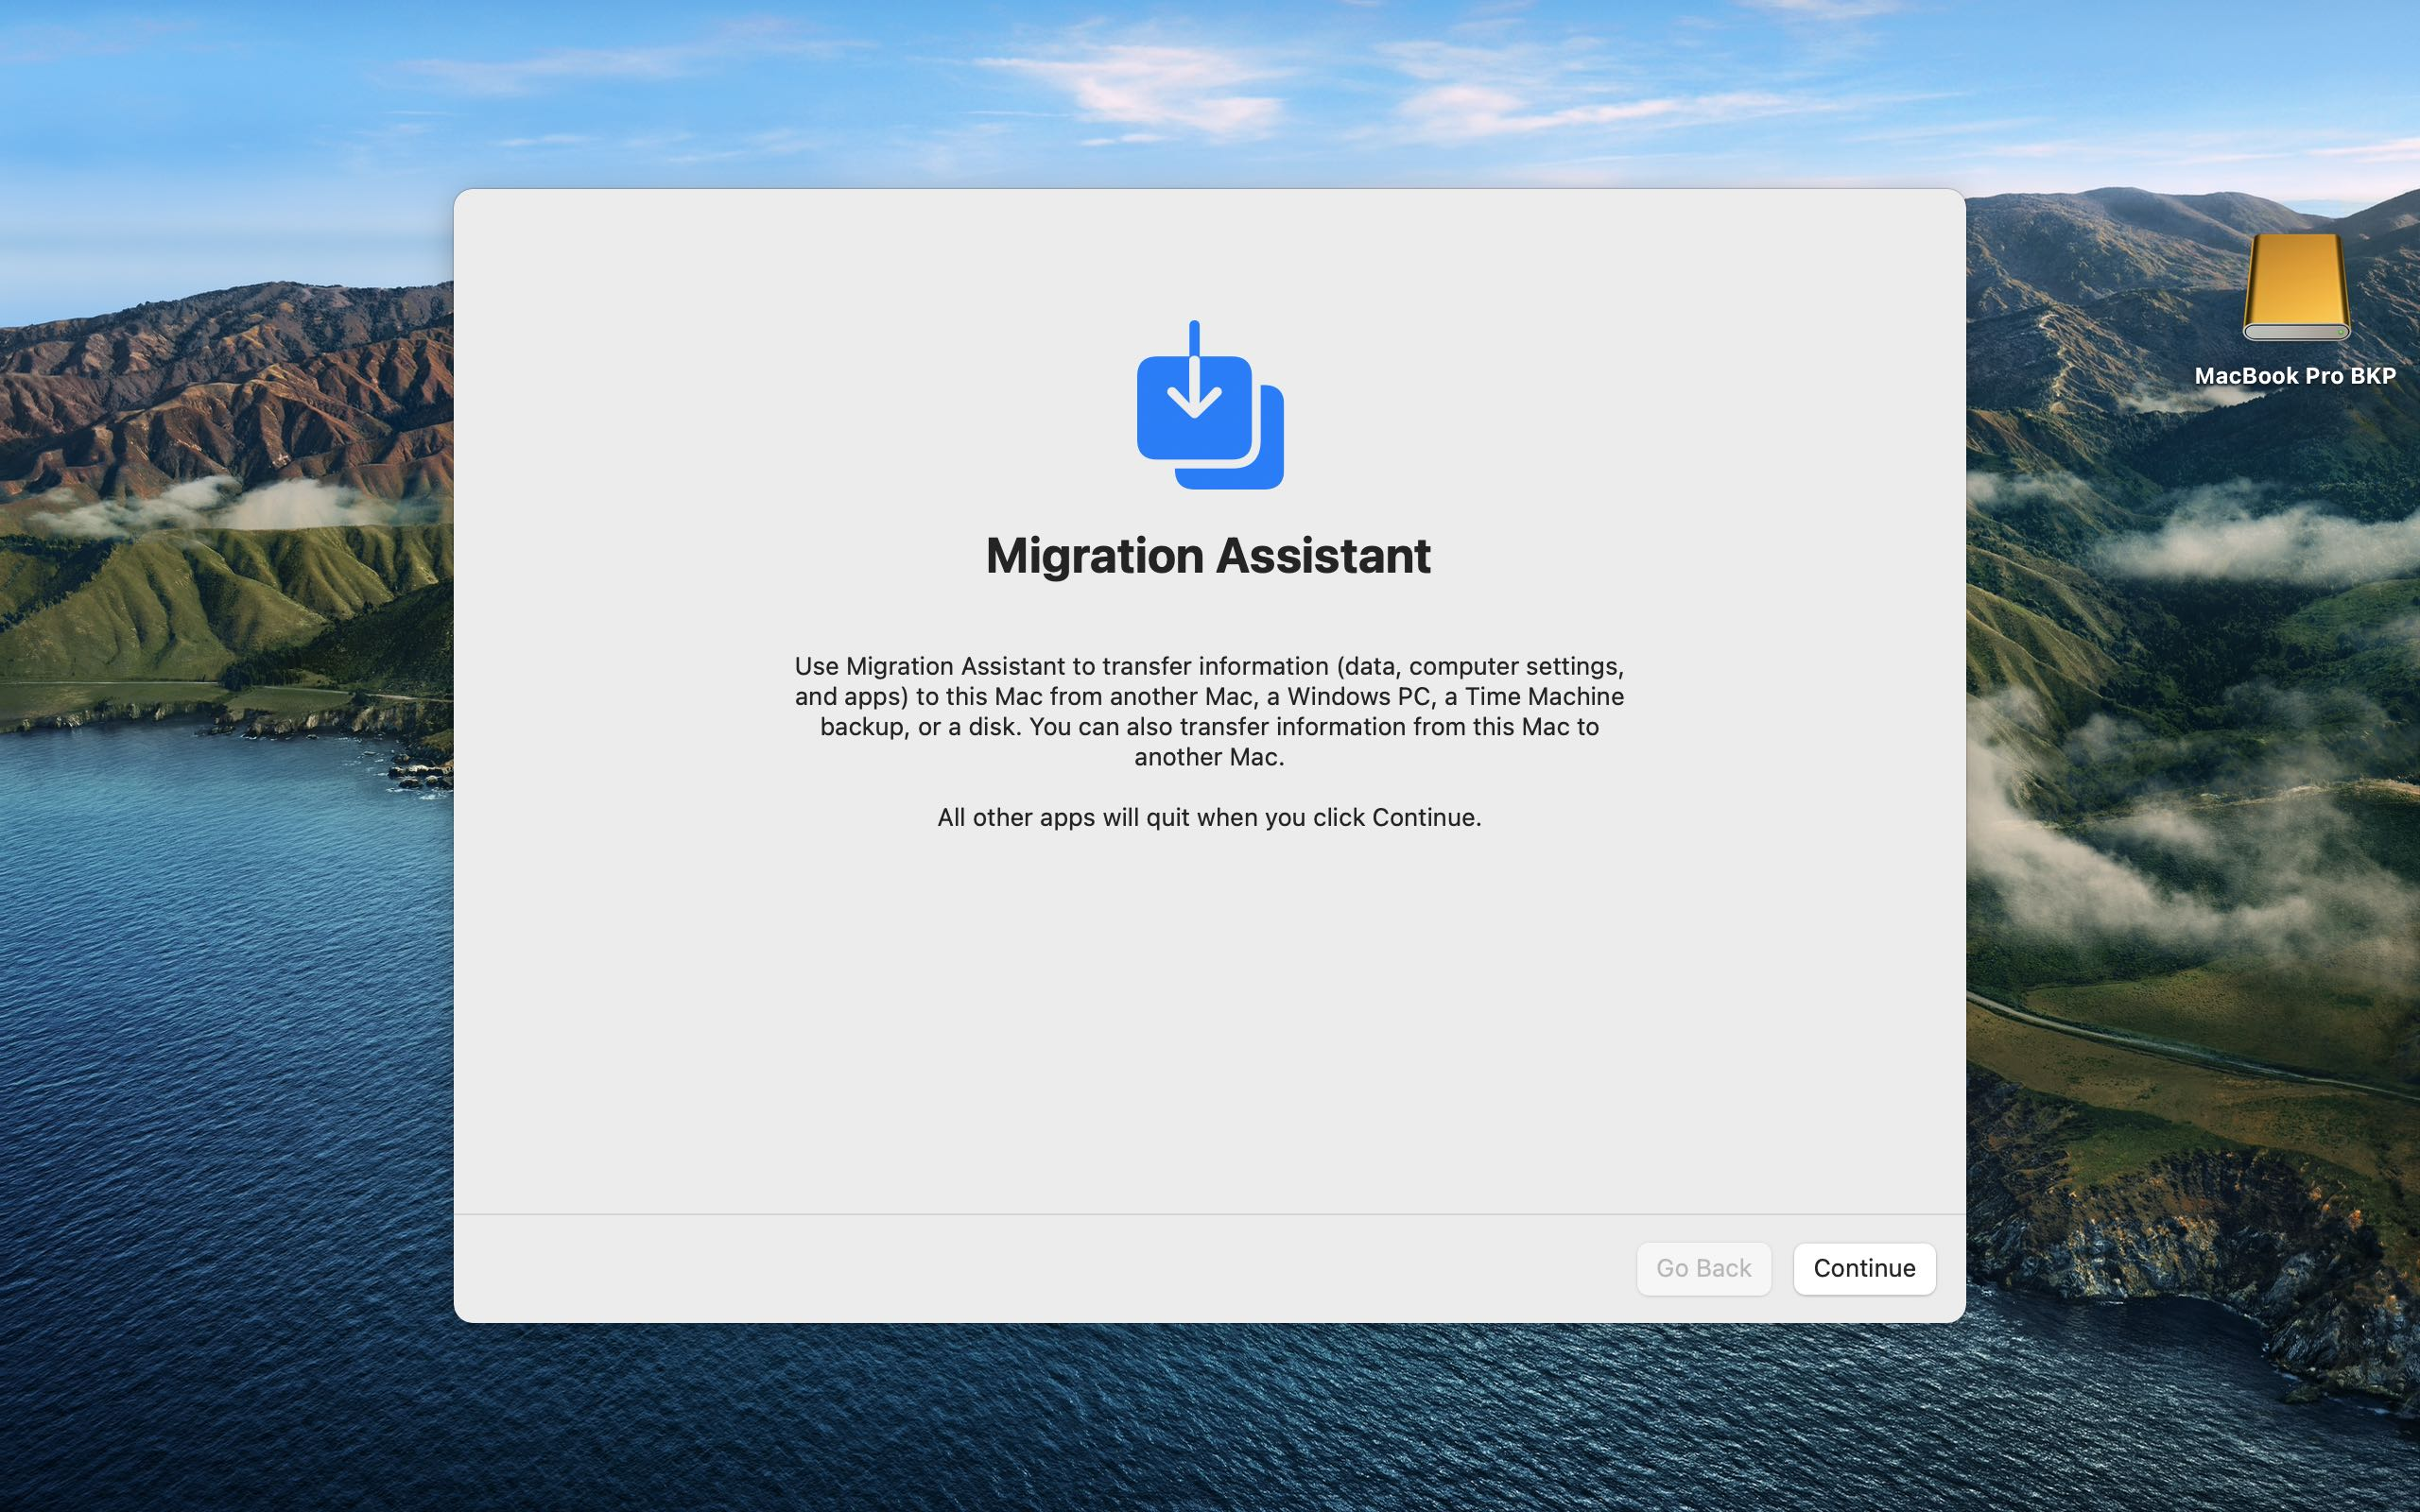 Open Migration Assistant